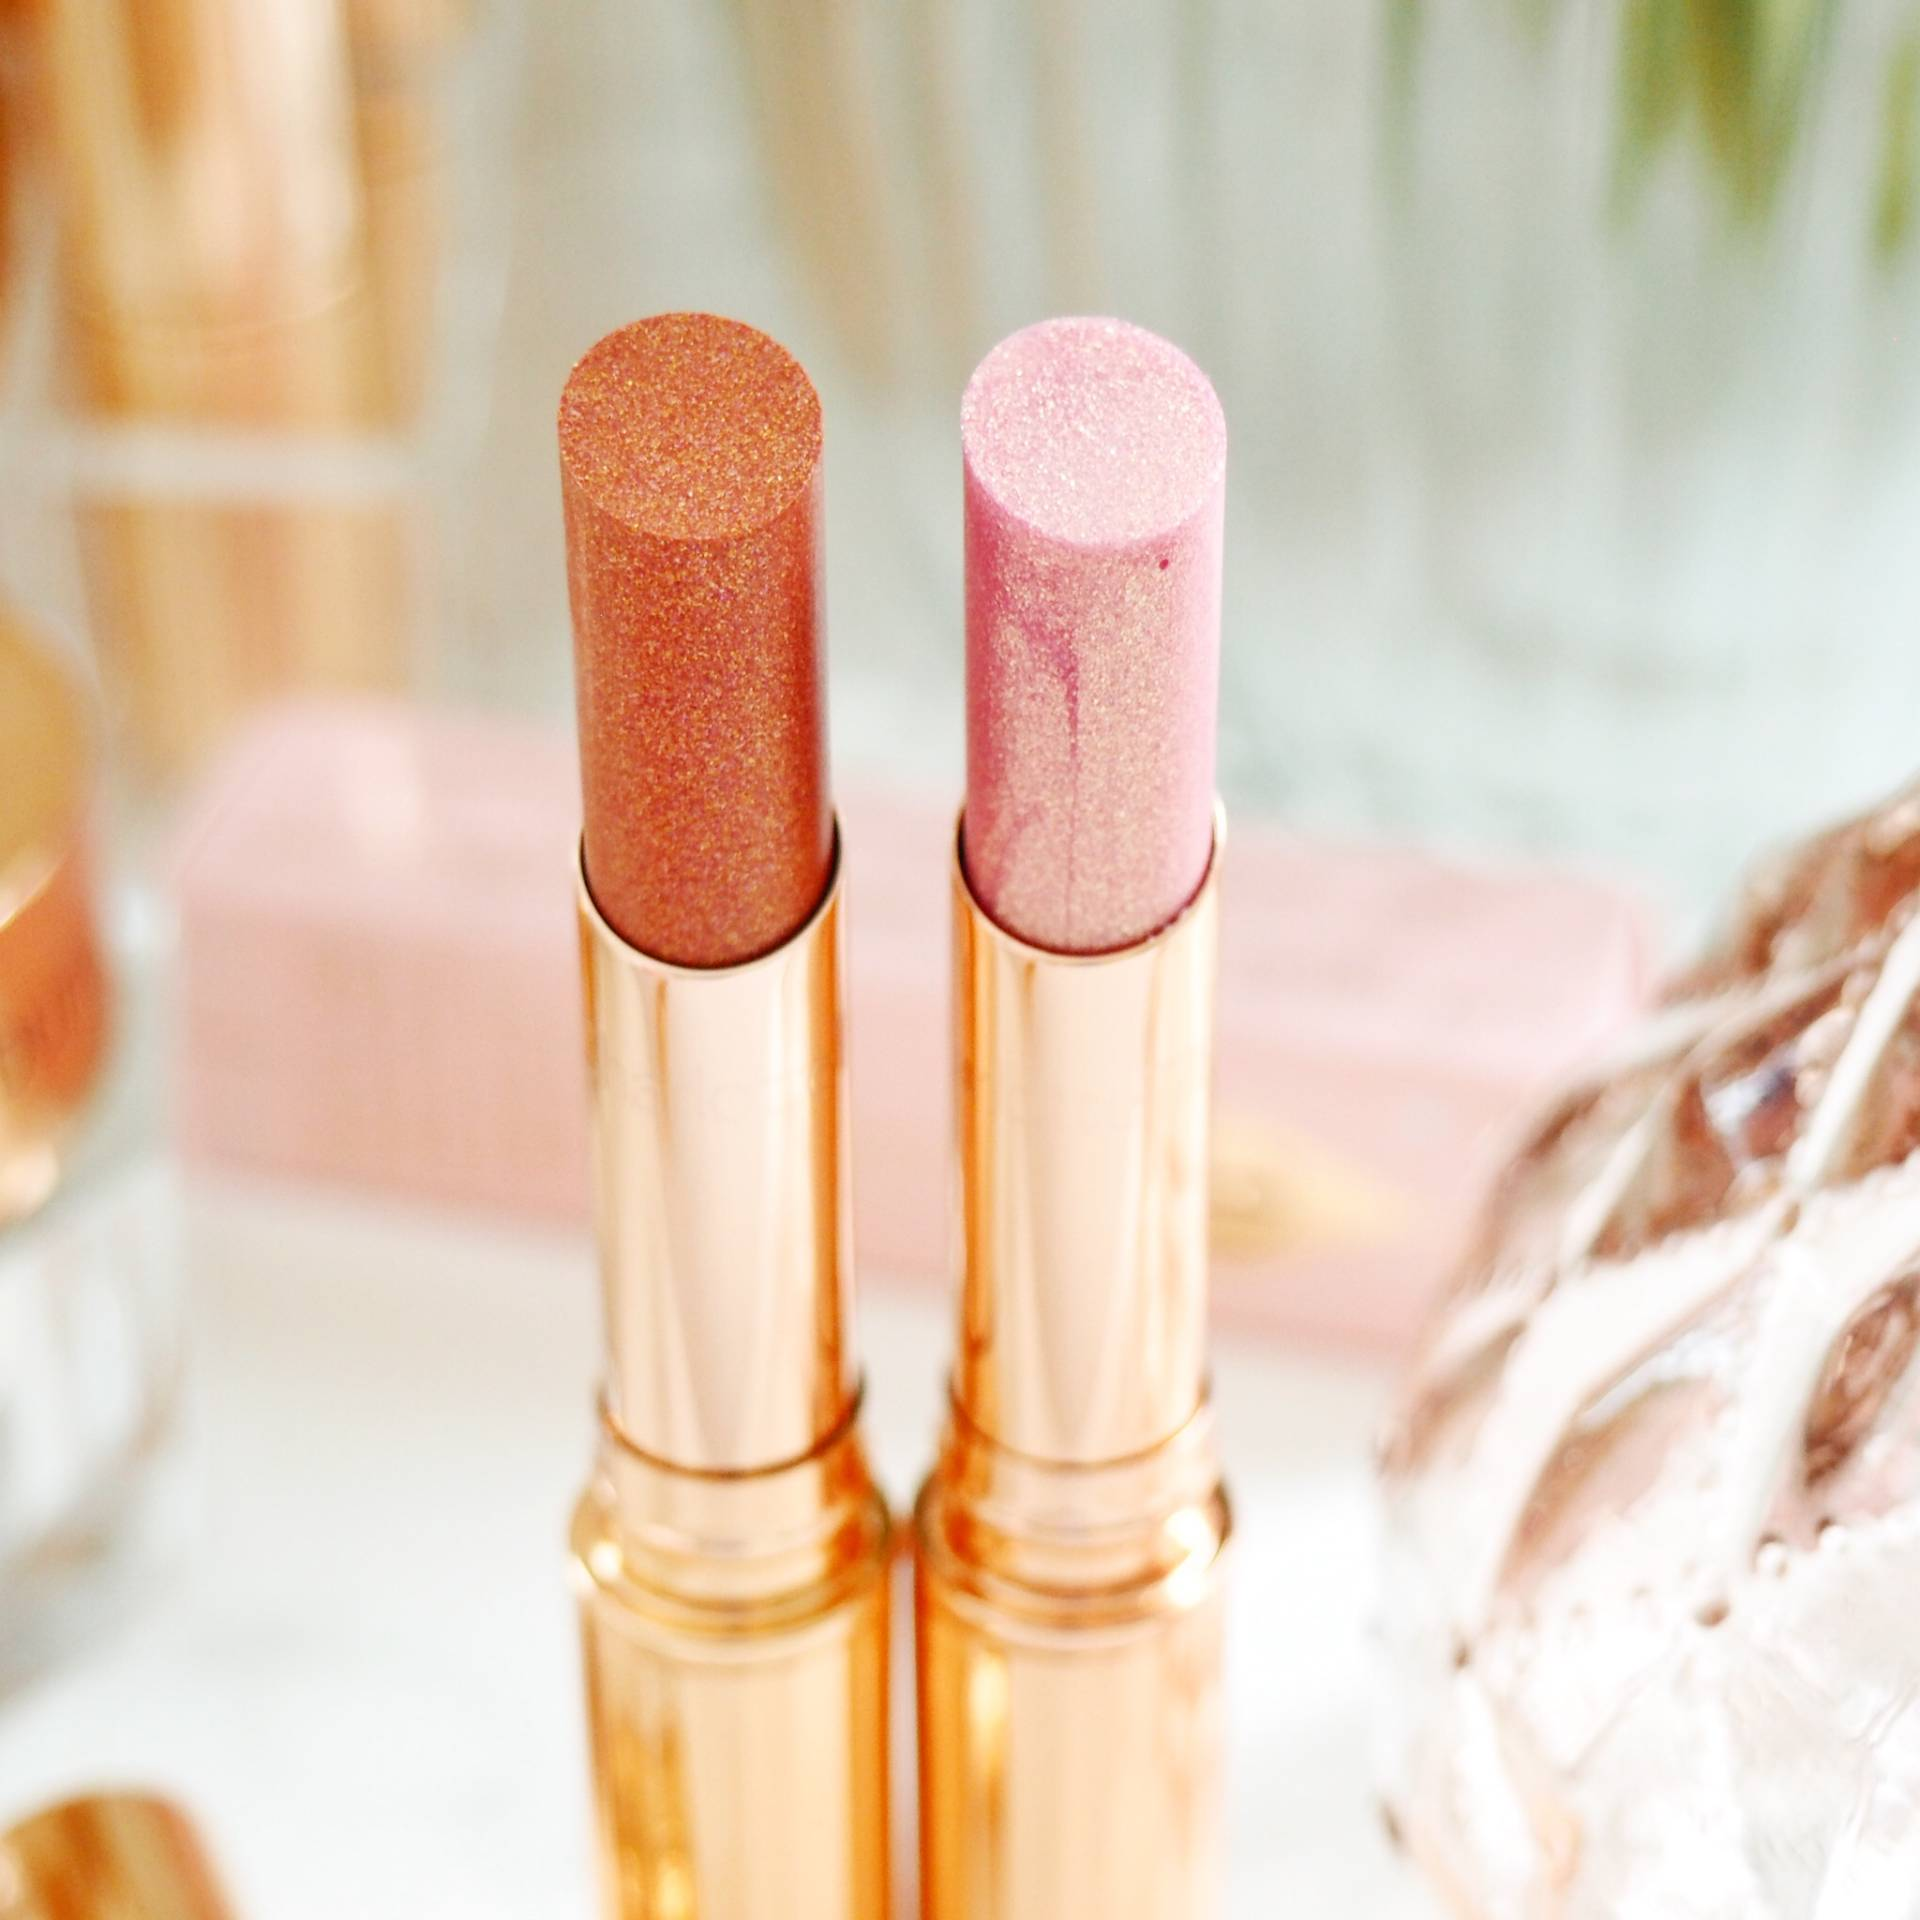 Charlotte Tilbury Pillow Talk Diamonds Lipsticks Review and Swatches